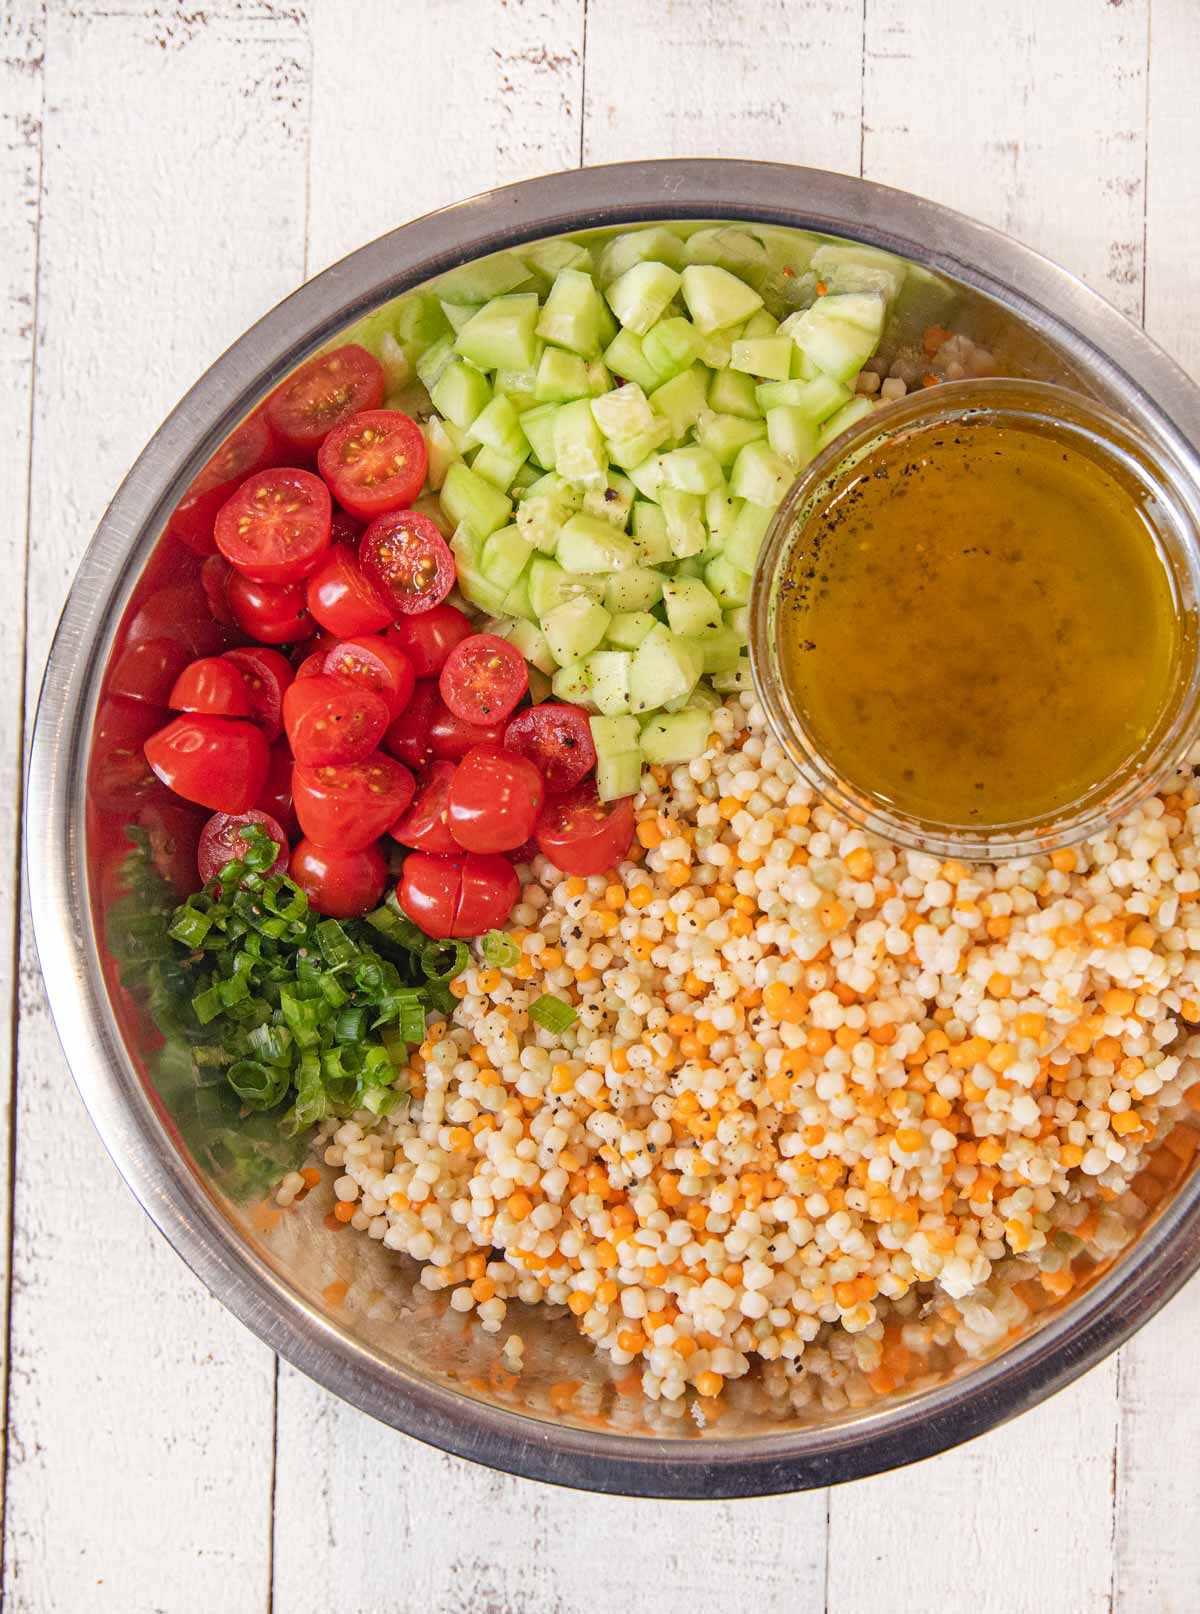 Couscous Salad Ingredients in bowl